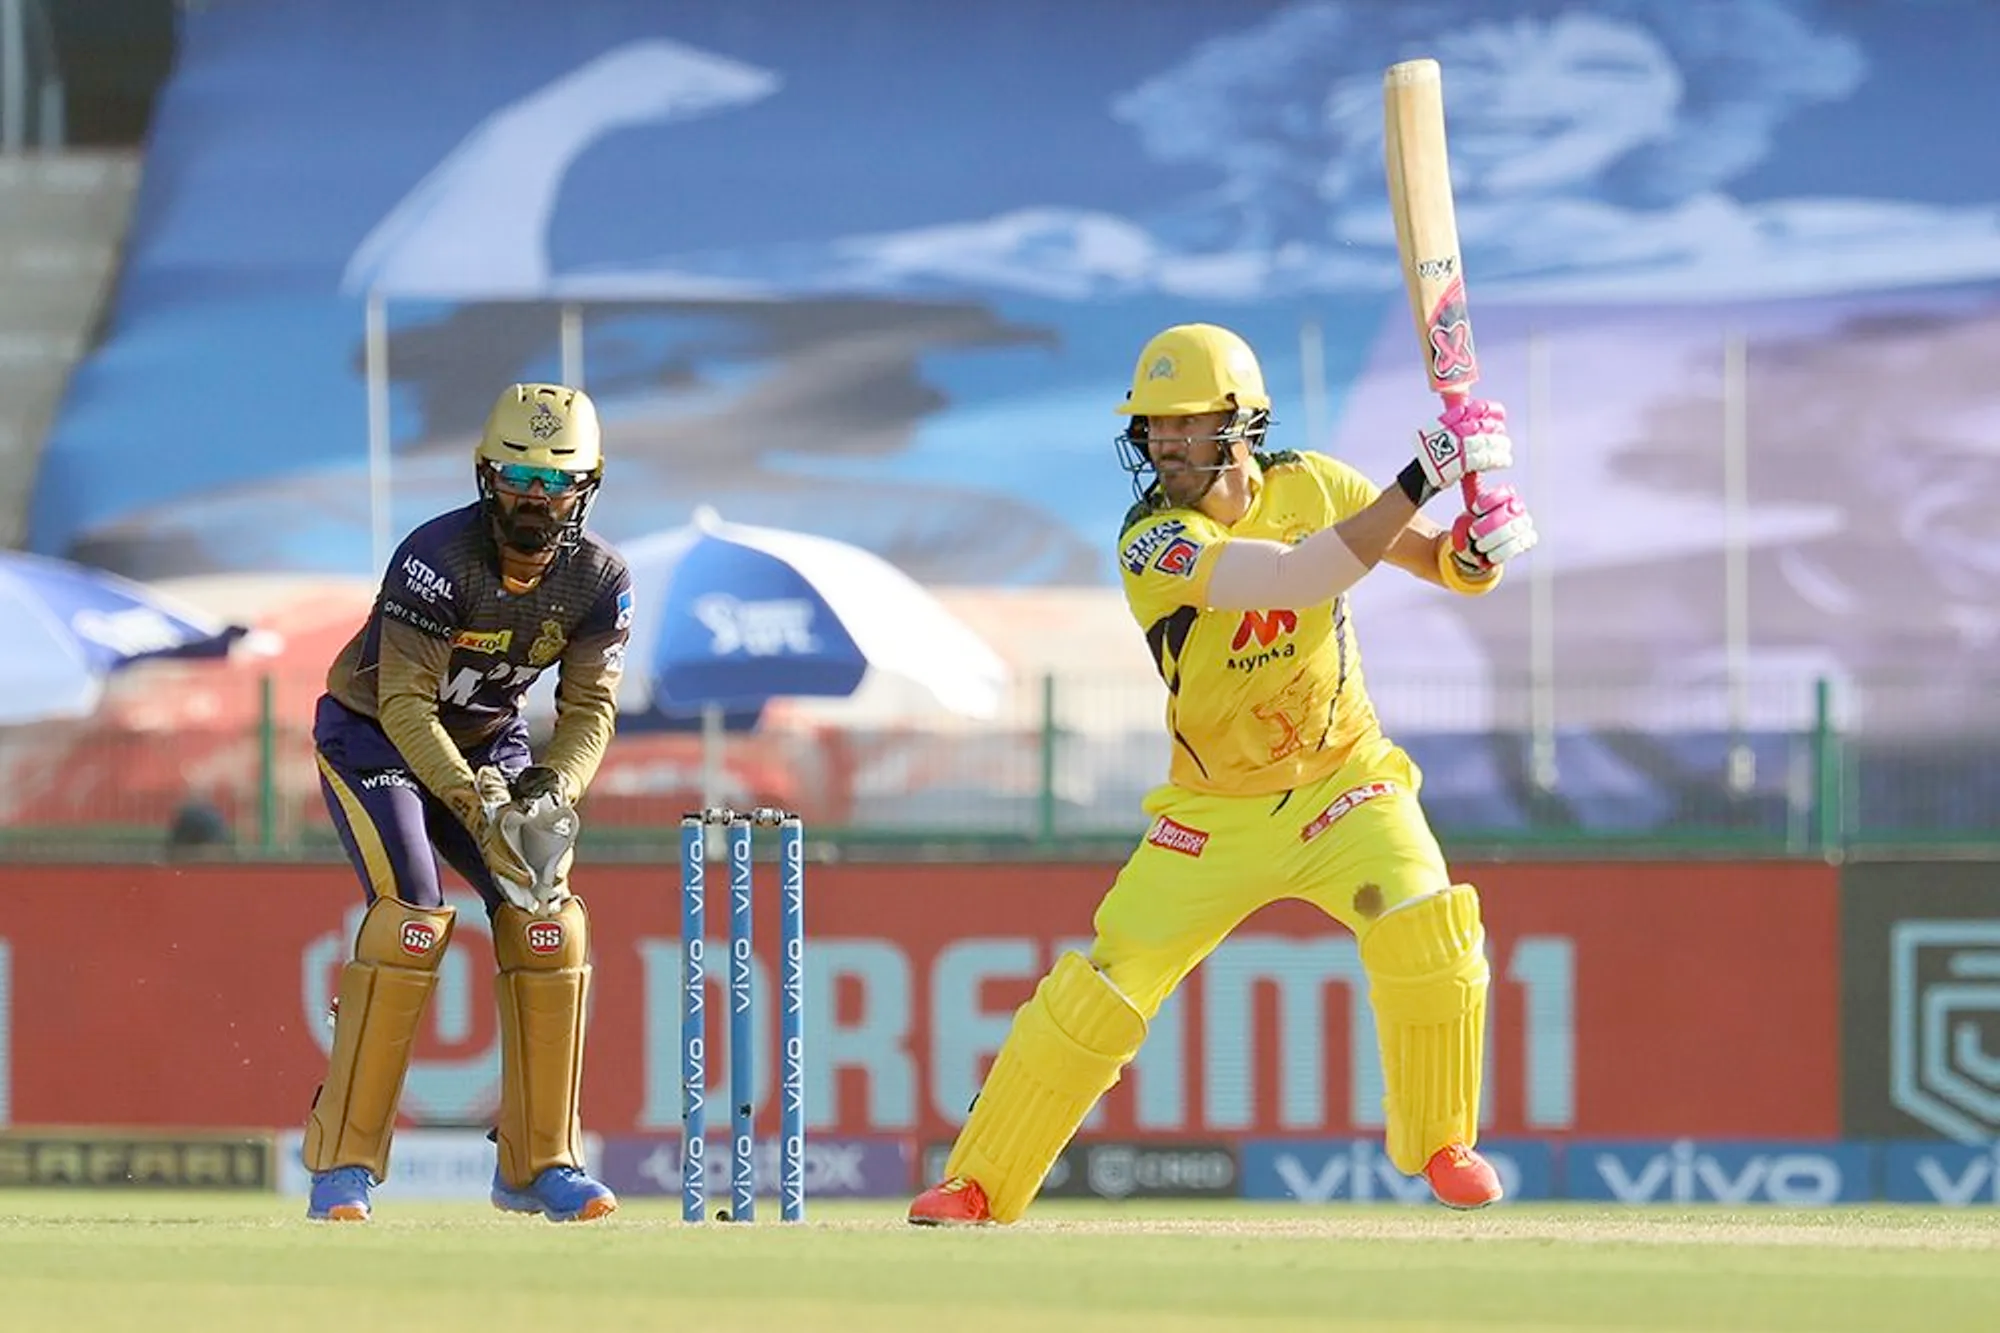 IPL 2021: This Season Has Been A Bit Disjointed – Kane Williamson After 6-Wicket Loss To CSK